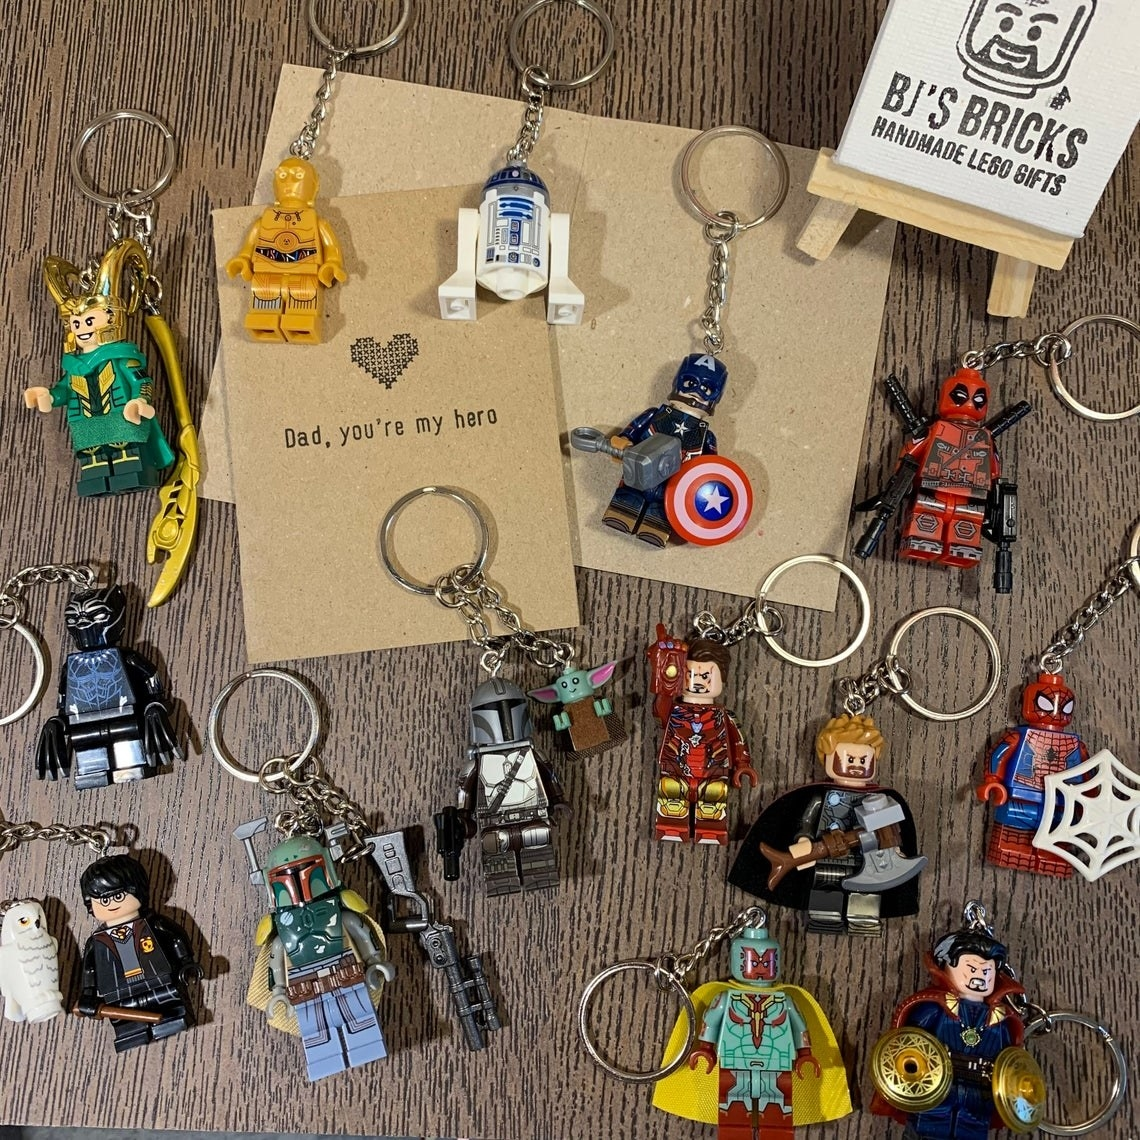 """the paper card that says """"dad, you're my hero"""" with a heart on it and a variety of different superhero keychains on a surface"""